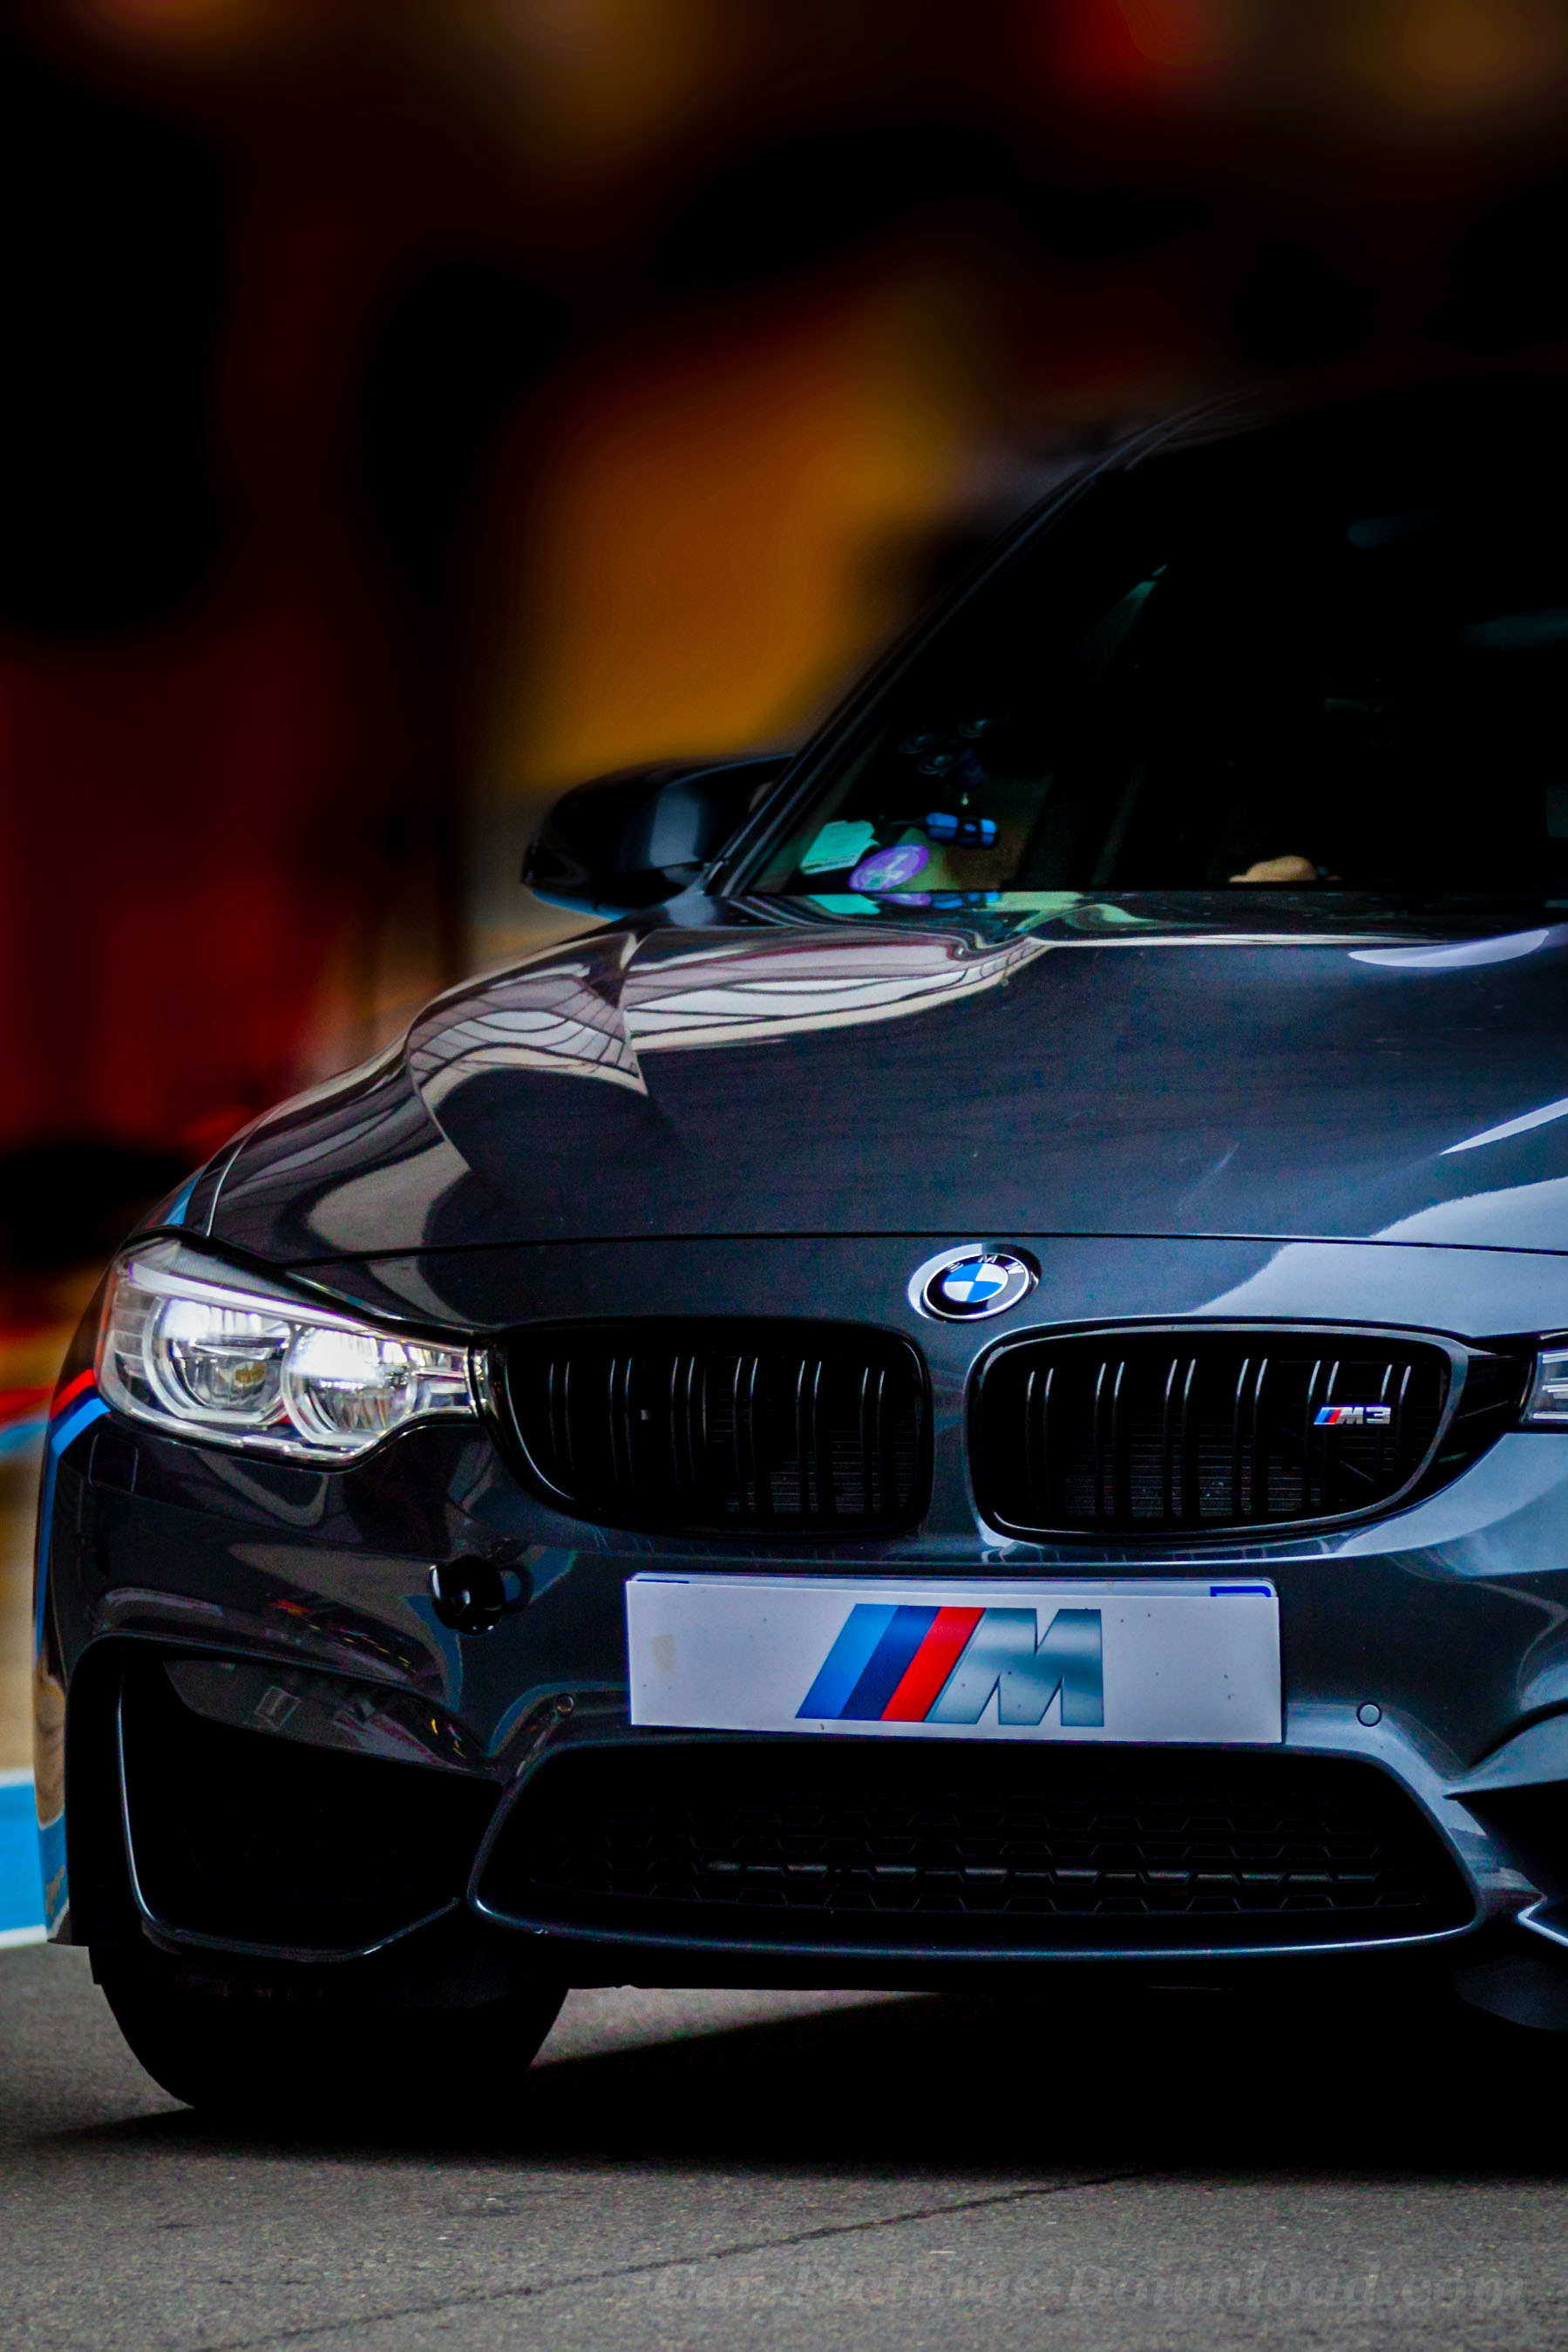 BMW M3 Wallpaper Pictures   For All Devices   HD Images Download 1799x2698